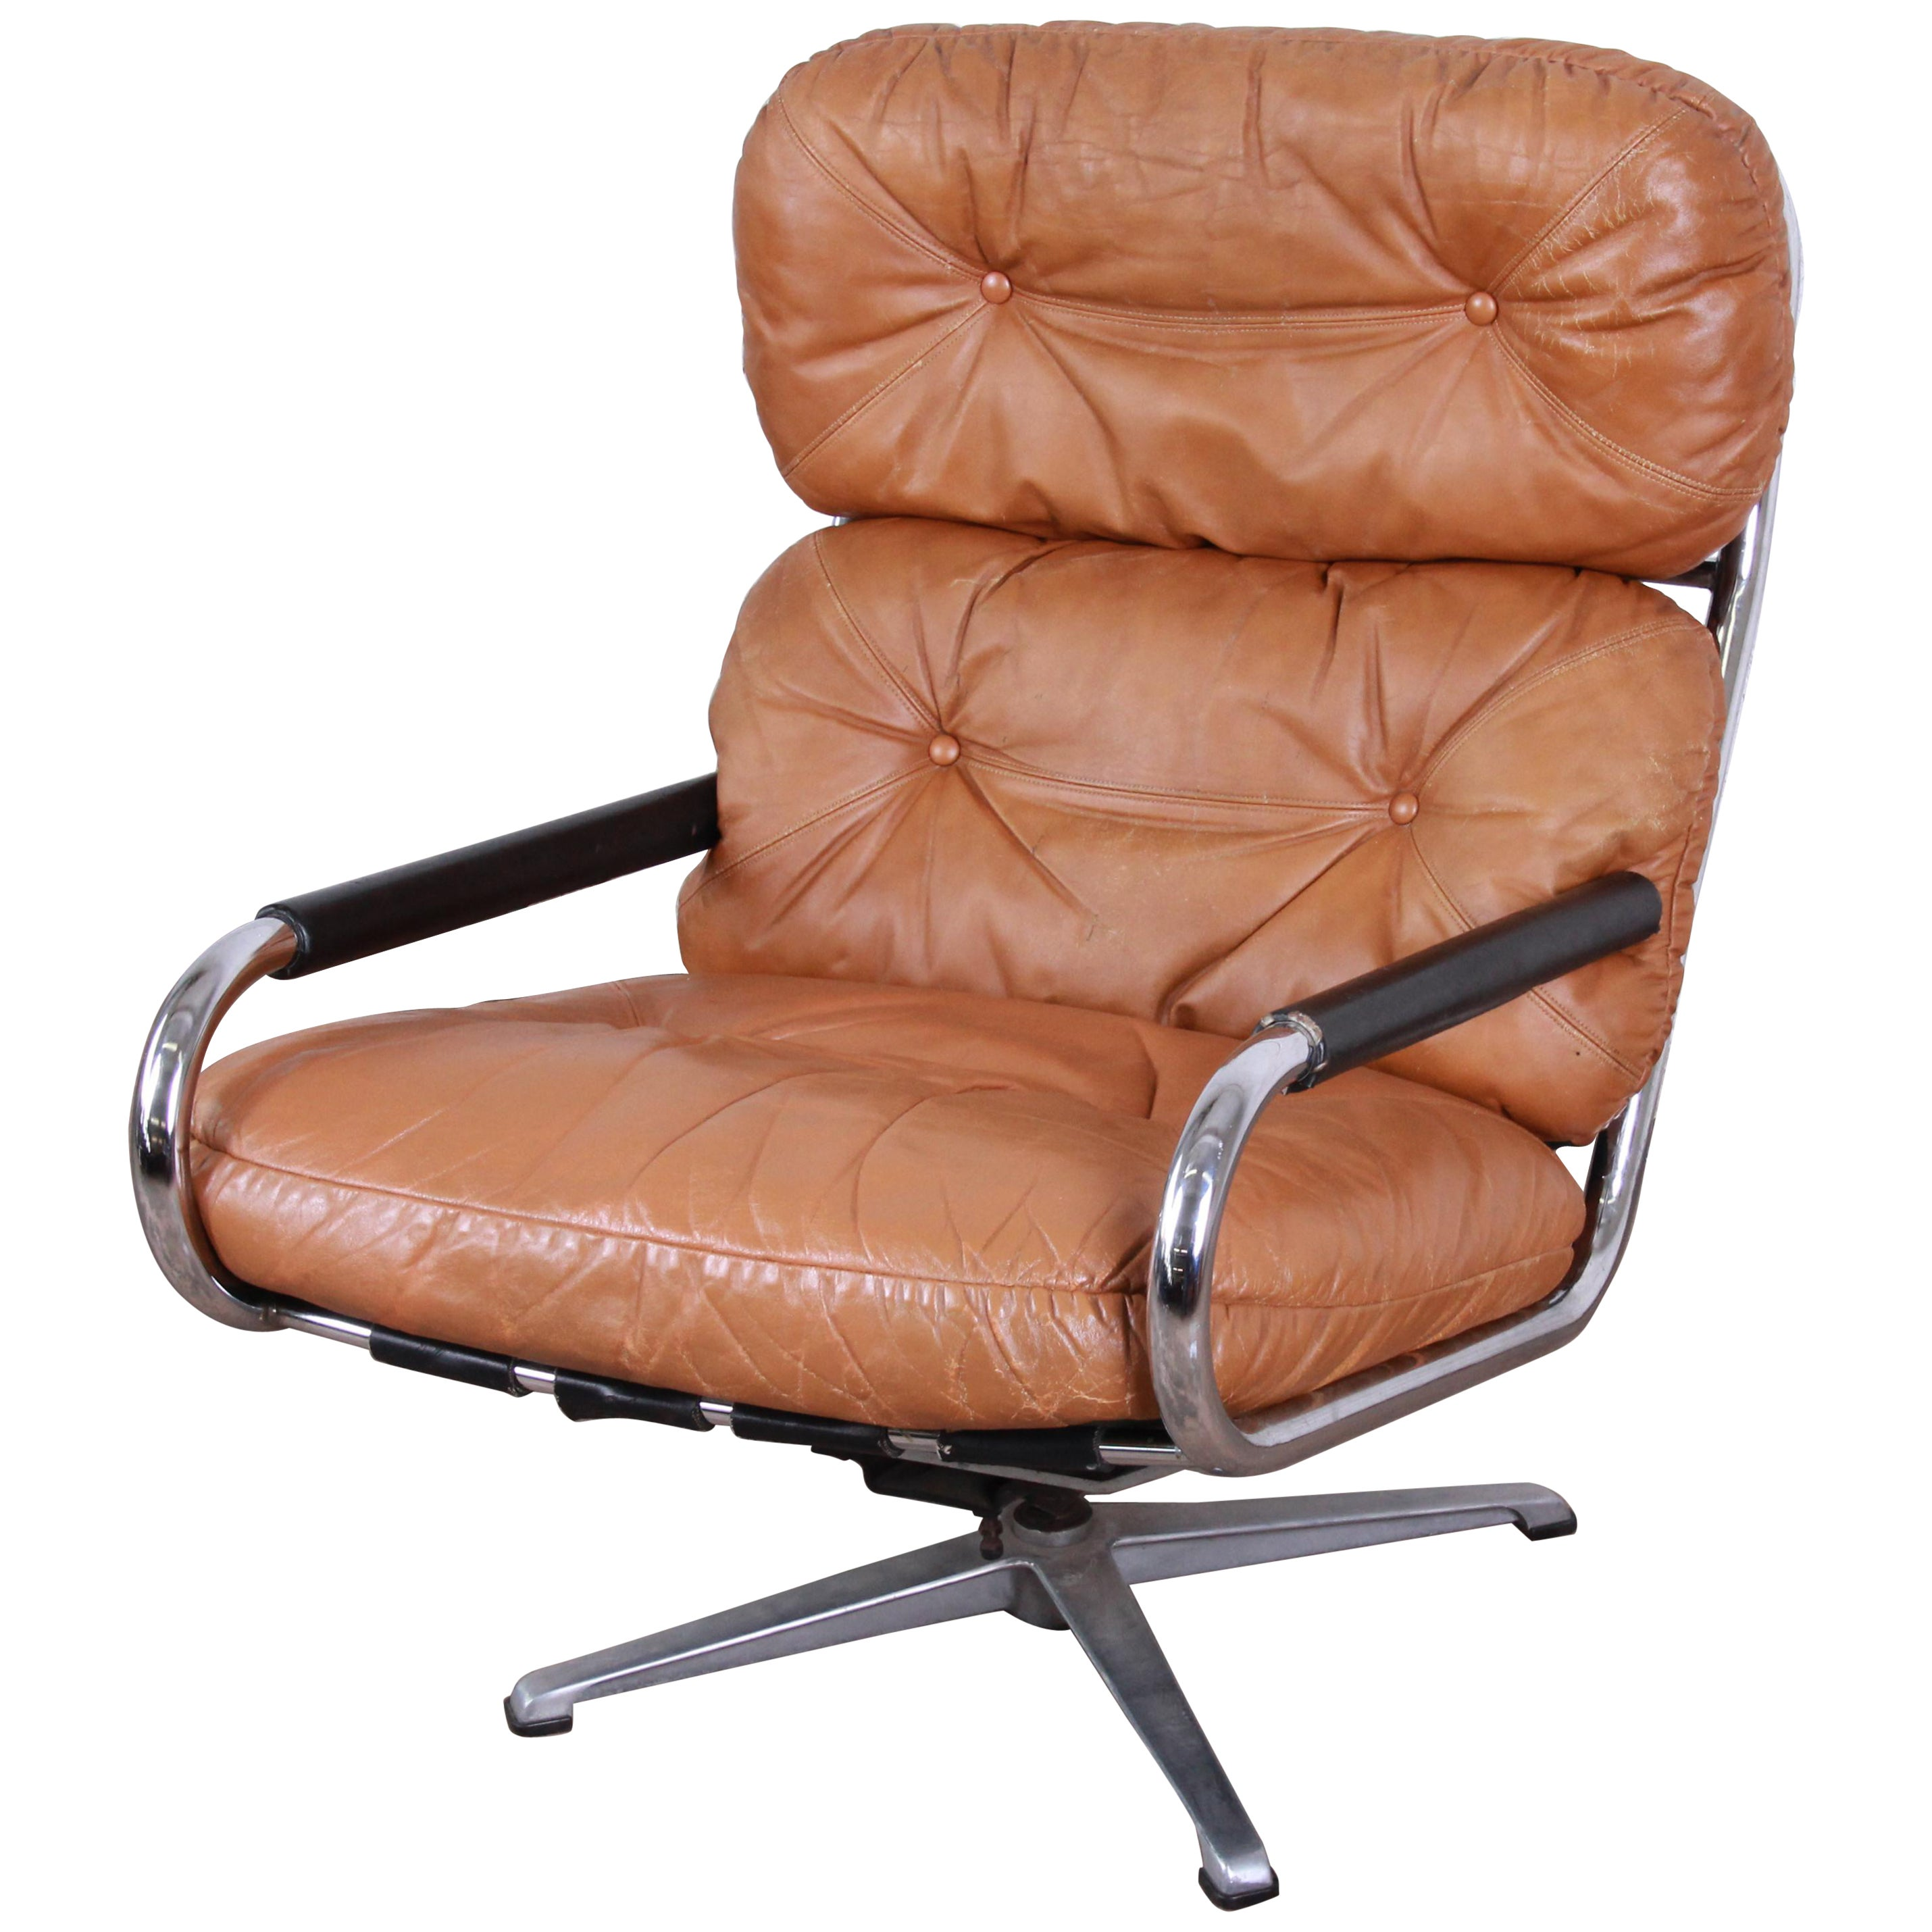 Directional Chrome and Leather Swivel Lounge Chair